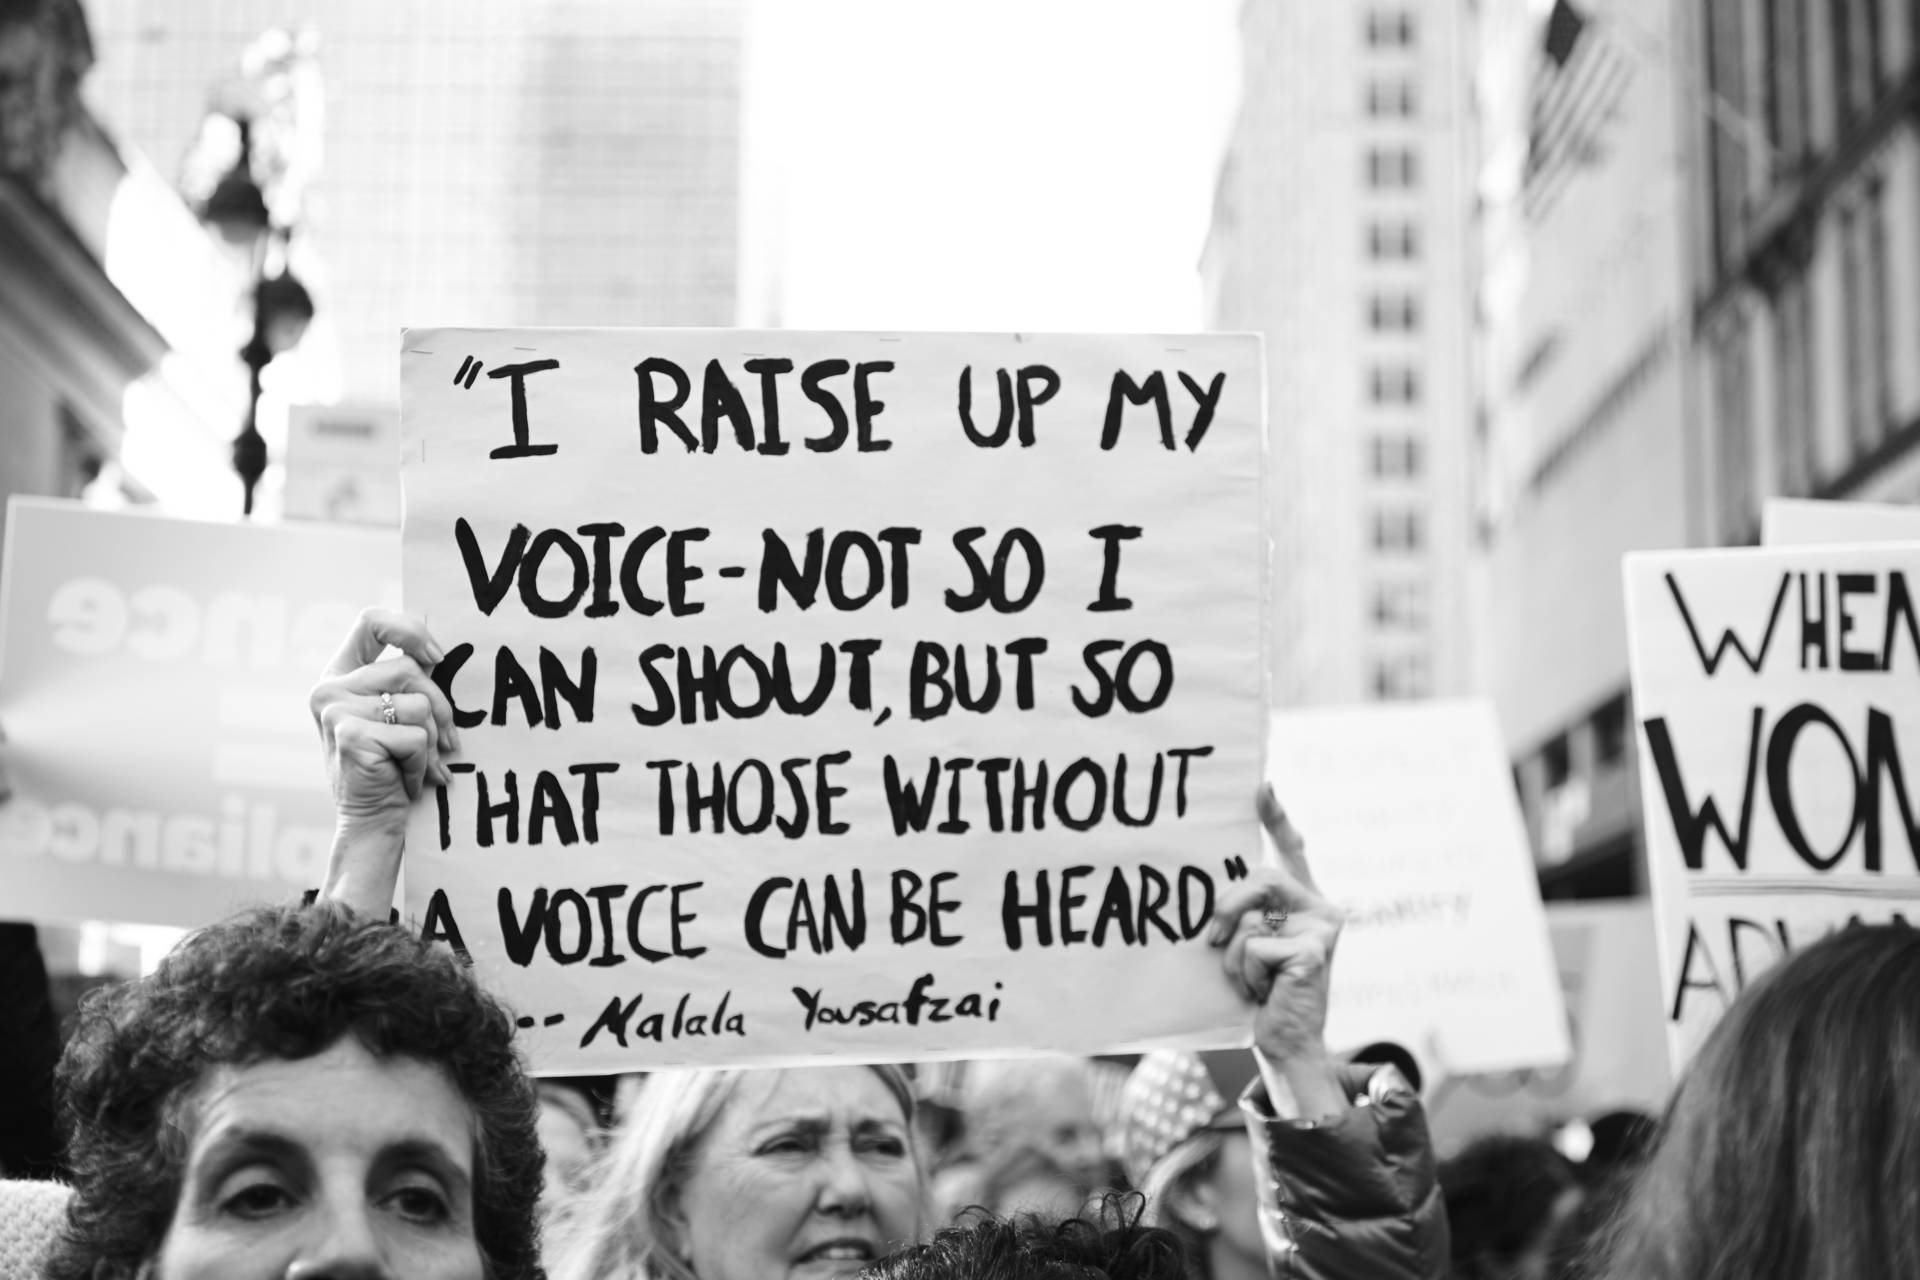 I raise up my voice not so I can shout, but so that those without a voice can be heard